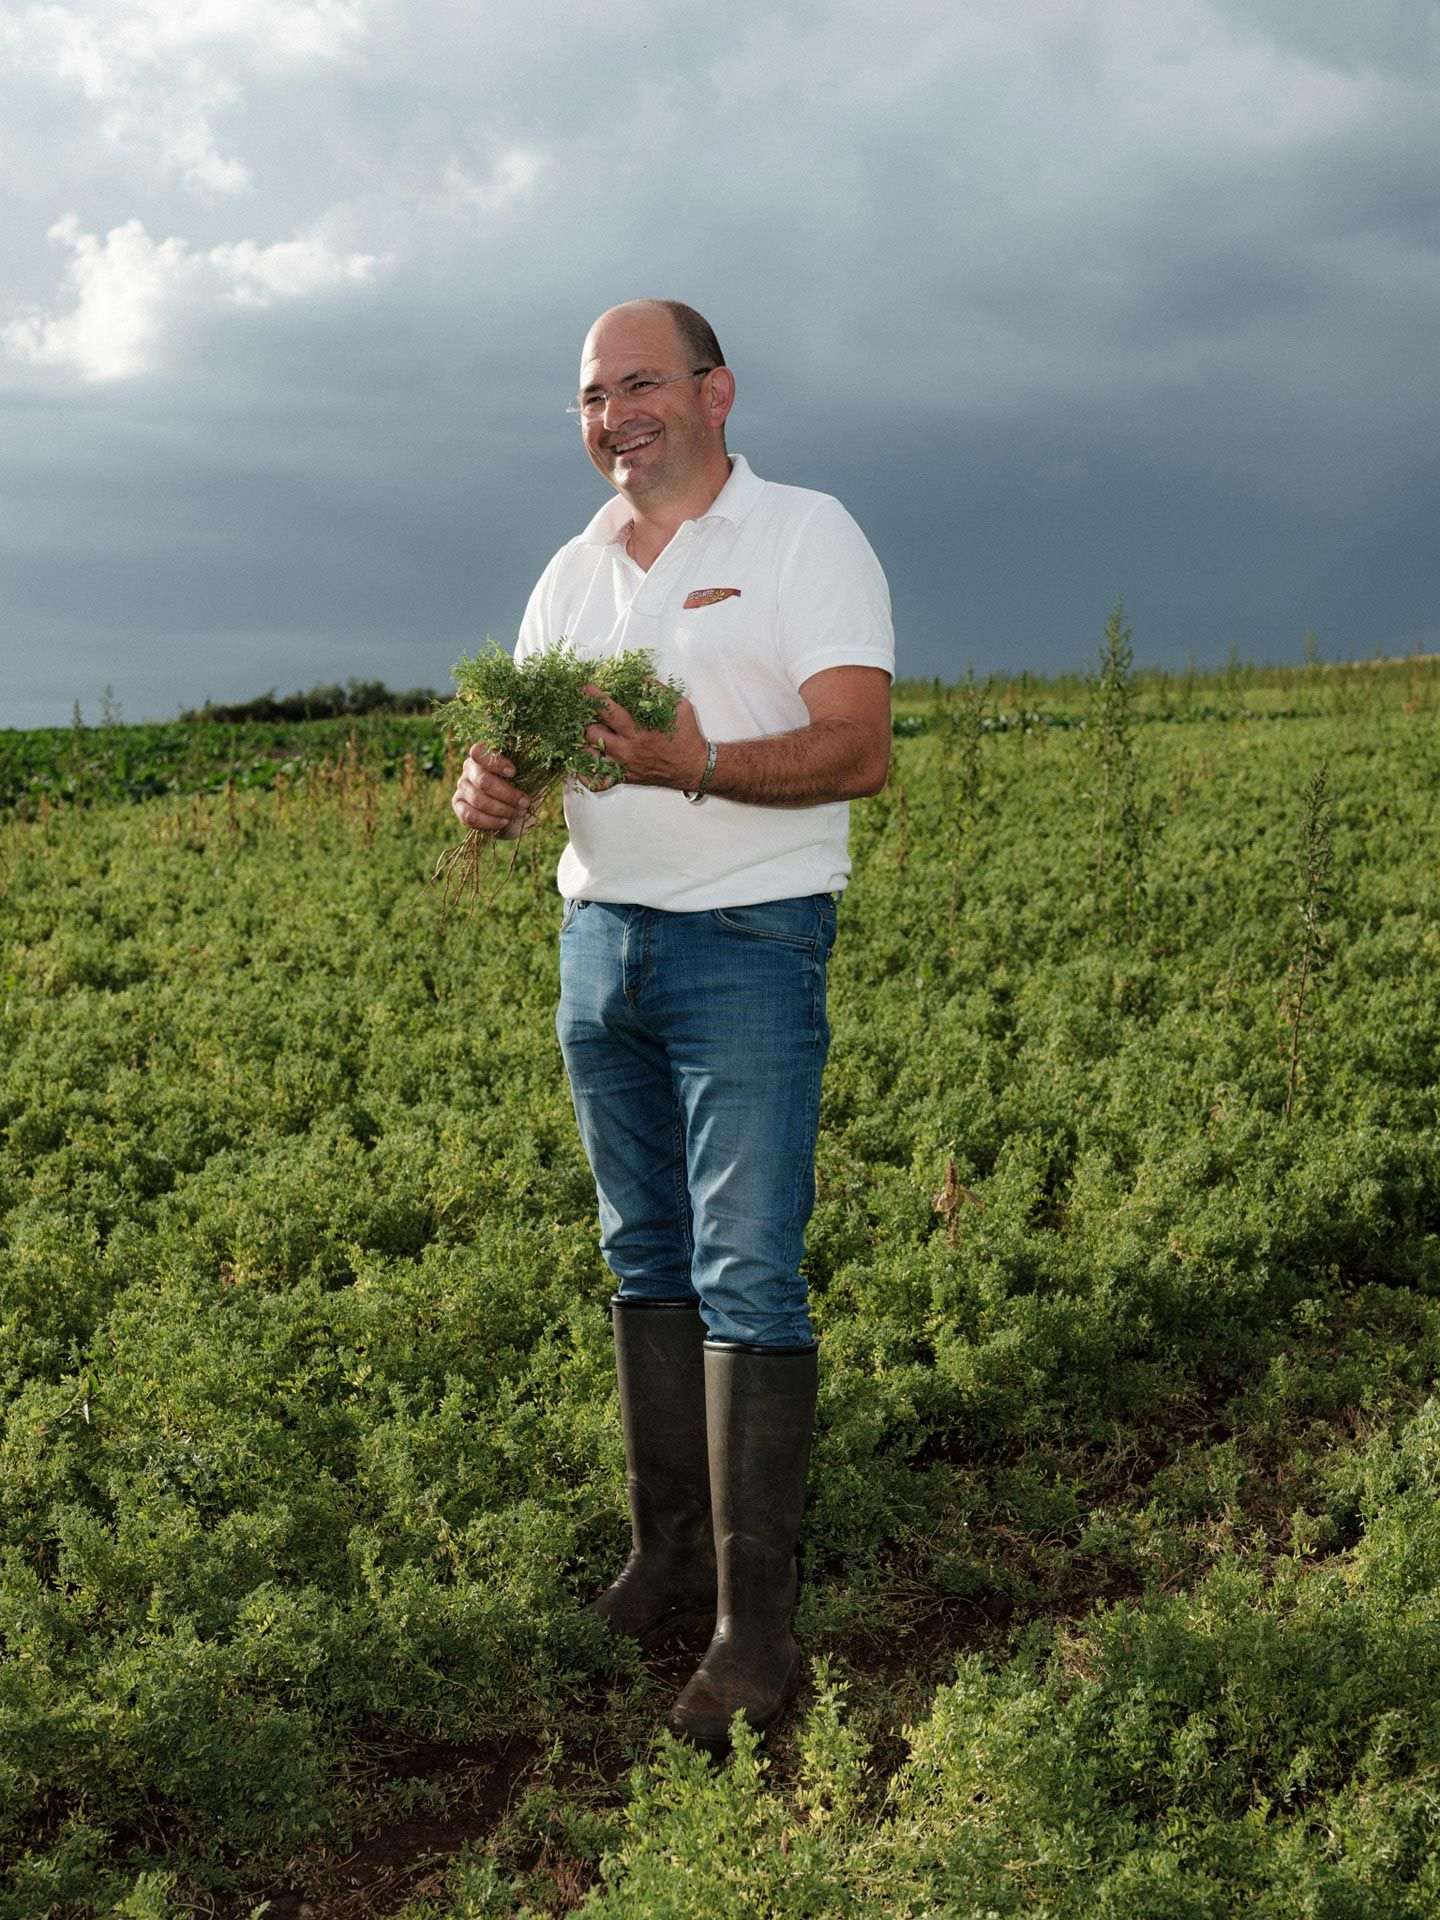 farmer man in his field laughing showing off his crop by Alexi Hobbs in Auvergne for Reflets de France